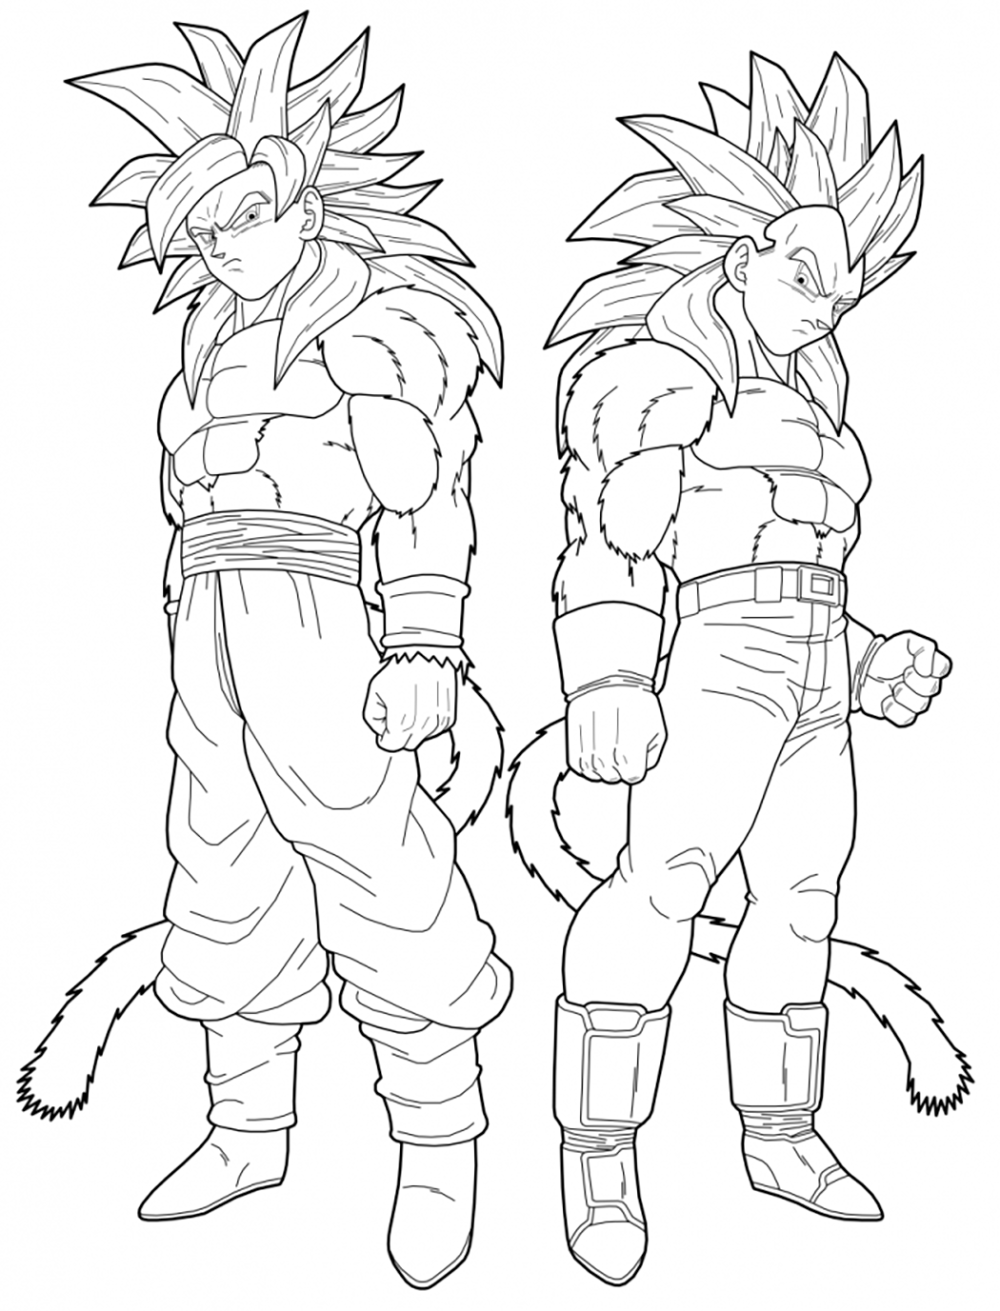 Songoku And Vegeta Super Saiyajin 4 Dragon Ball Z Kids Coloring Pages